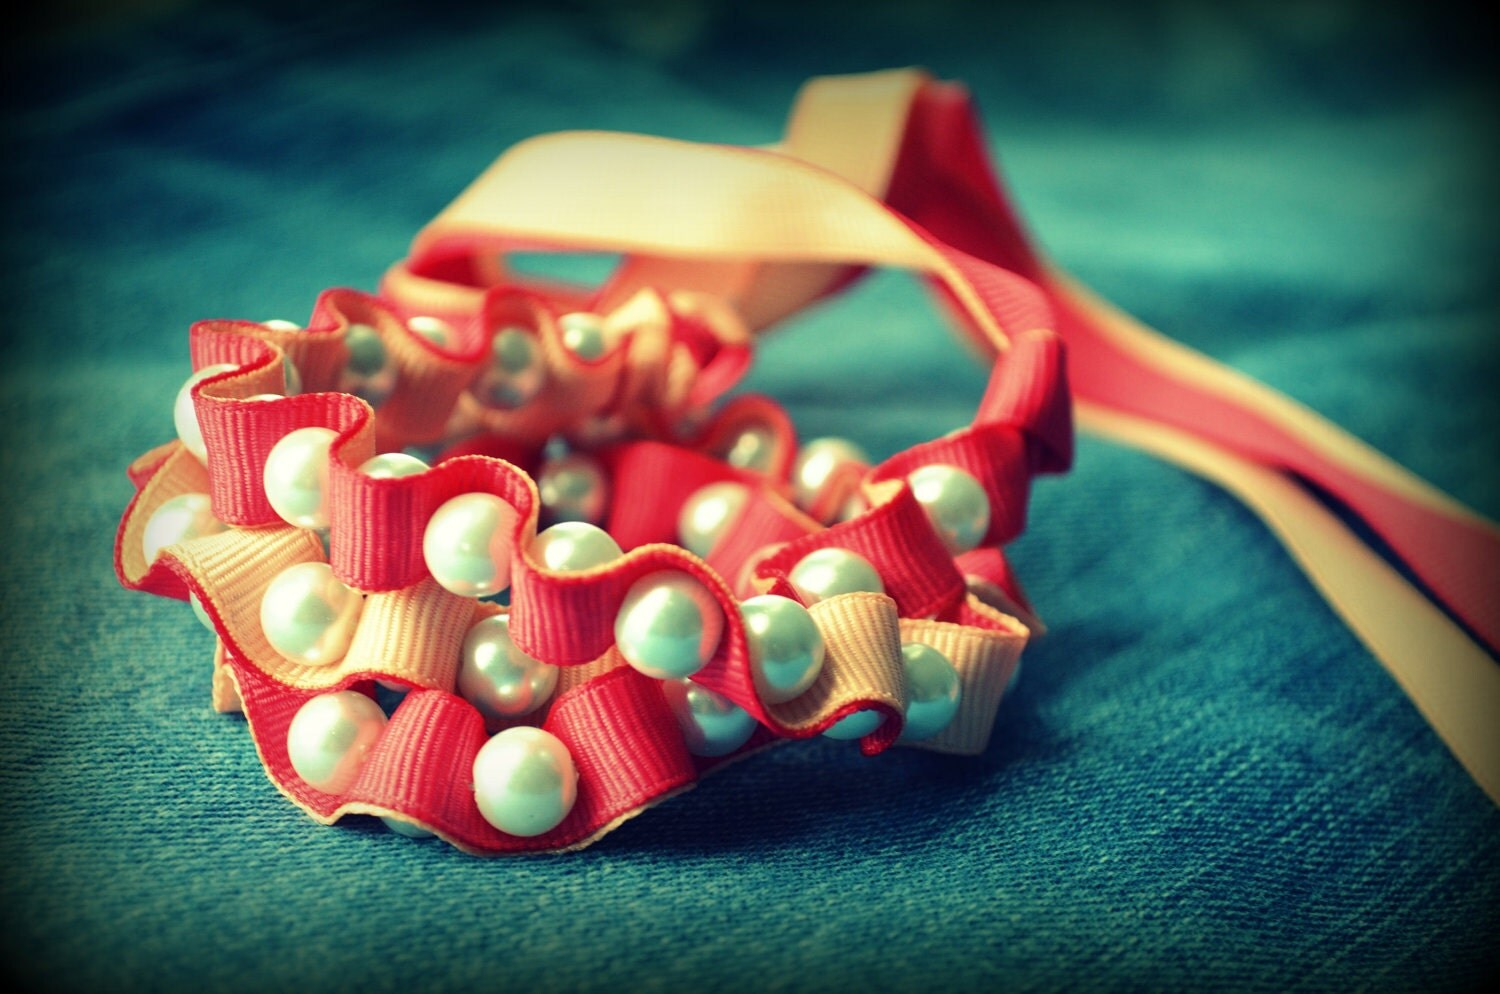 Ribbon Necklace -The Twillypop VIVID Collection -Sarah Ribbon and Pearls Necklace in Juicy Peach and Sunsoaked Guava